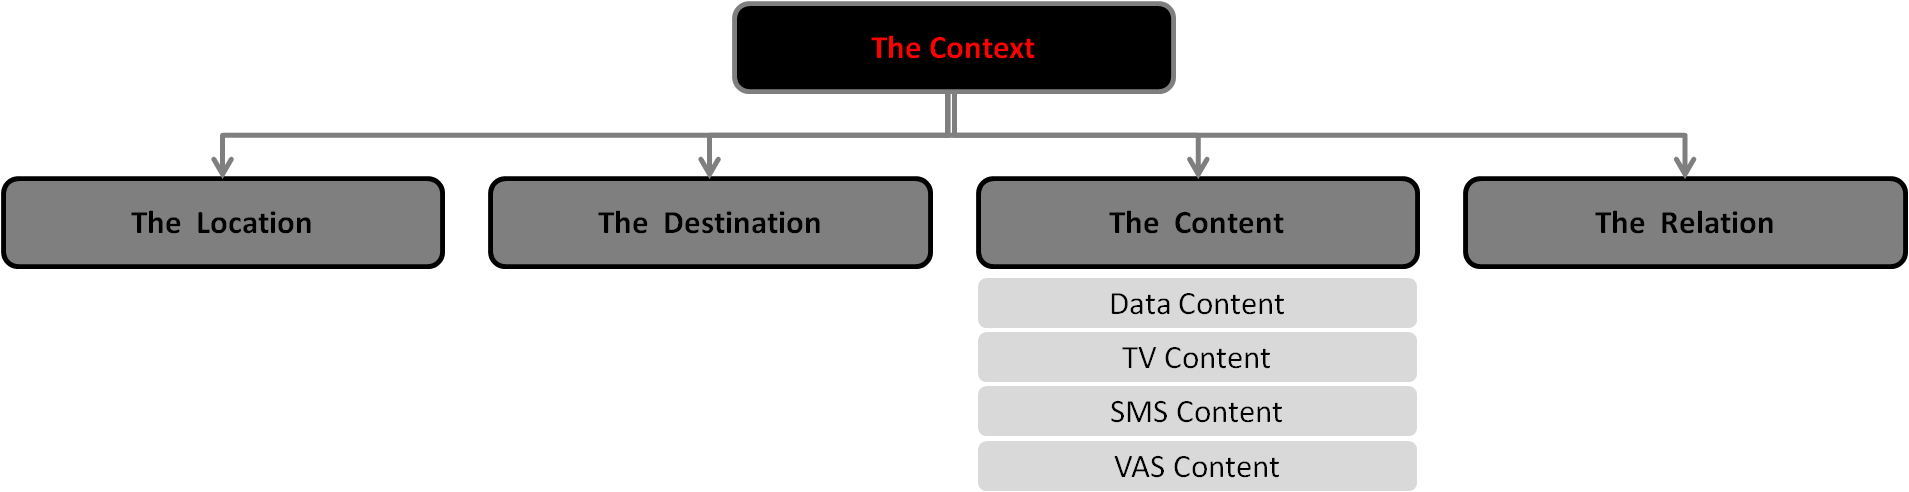 context of data mining in business Data mining and operational research: techniques and applications  within the context of data analysis methods, data mining can be  modern business.